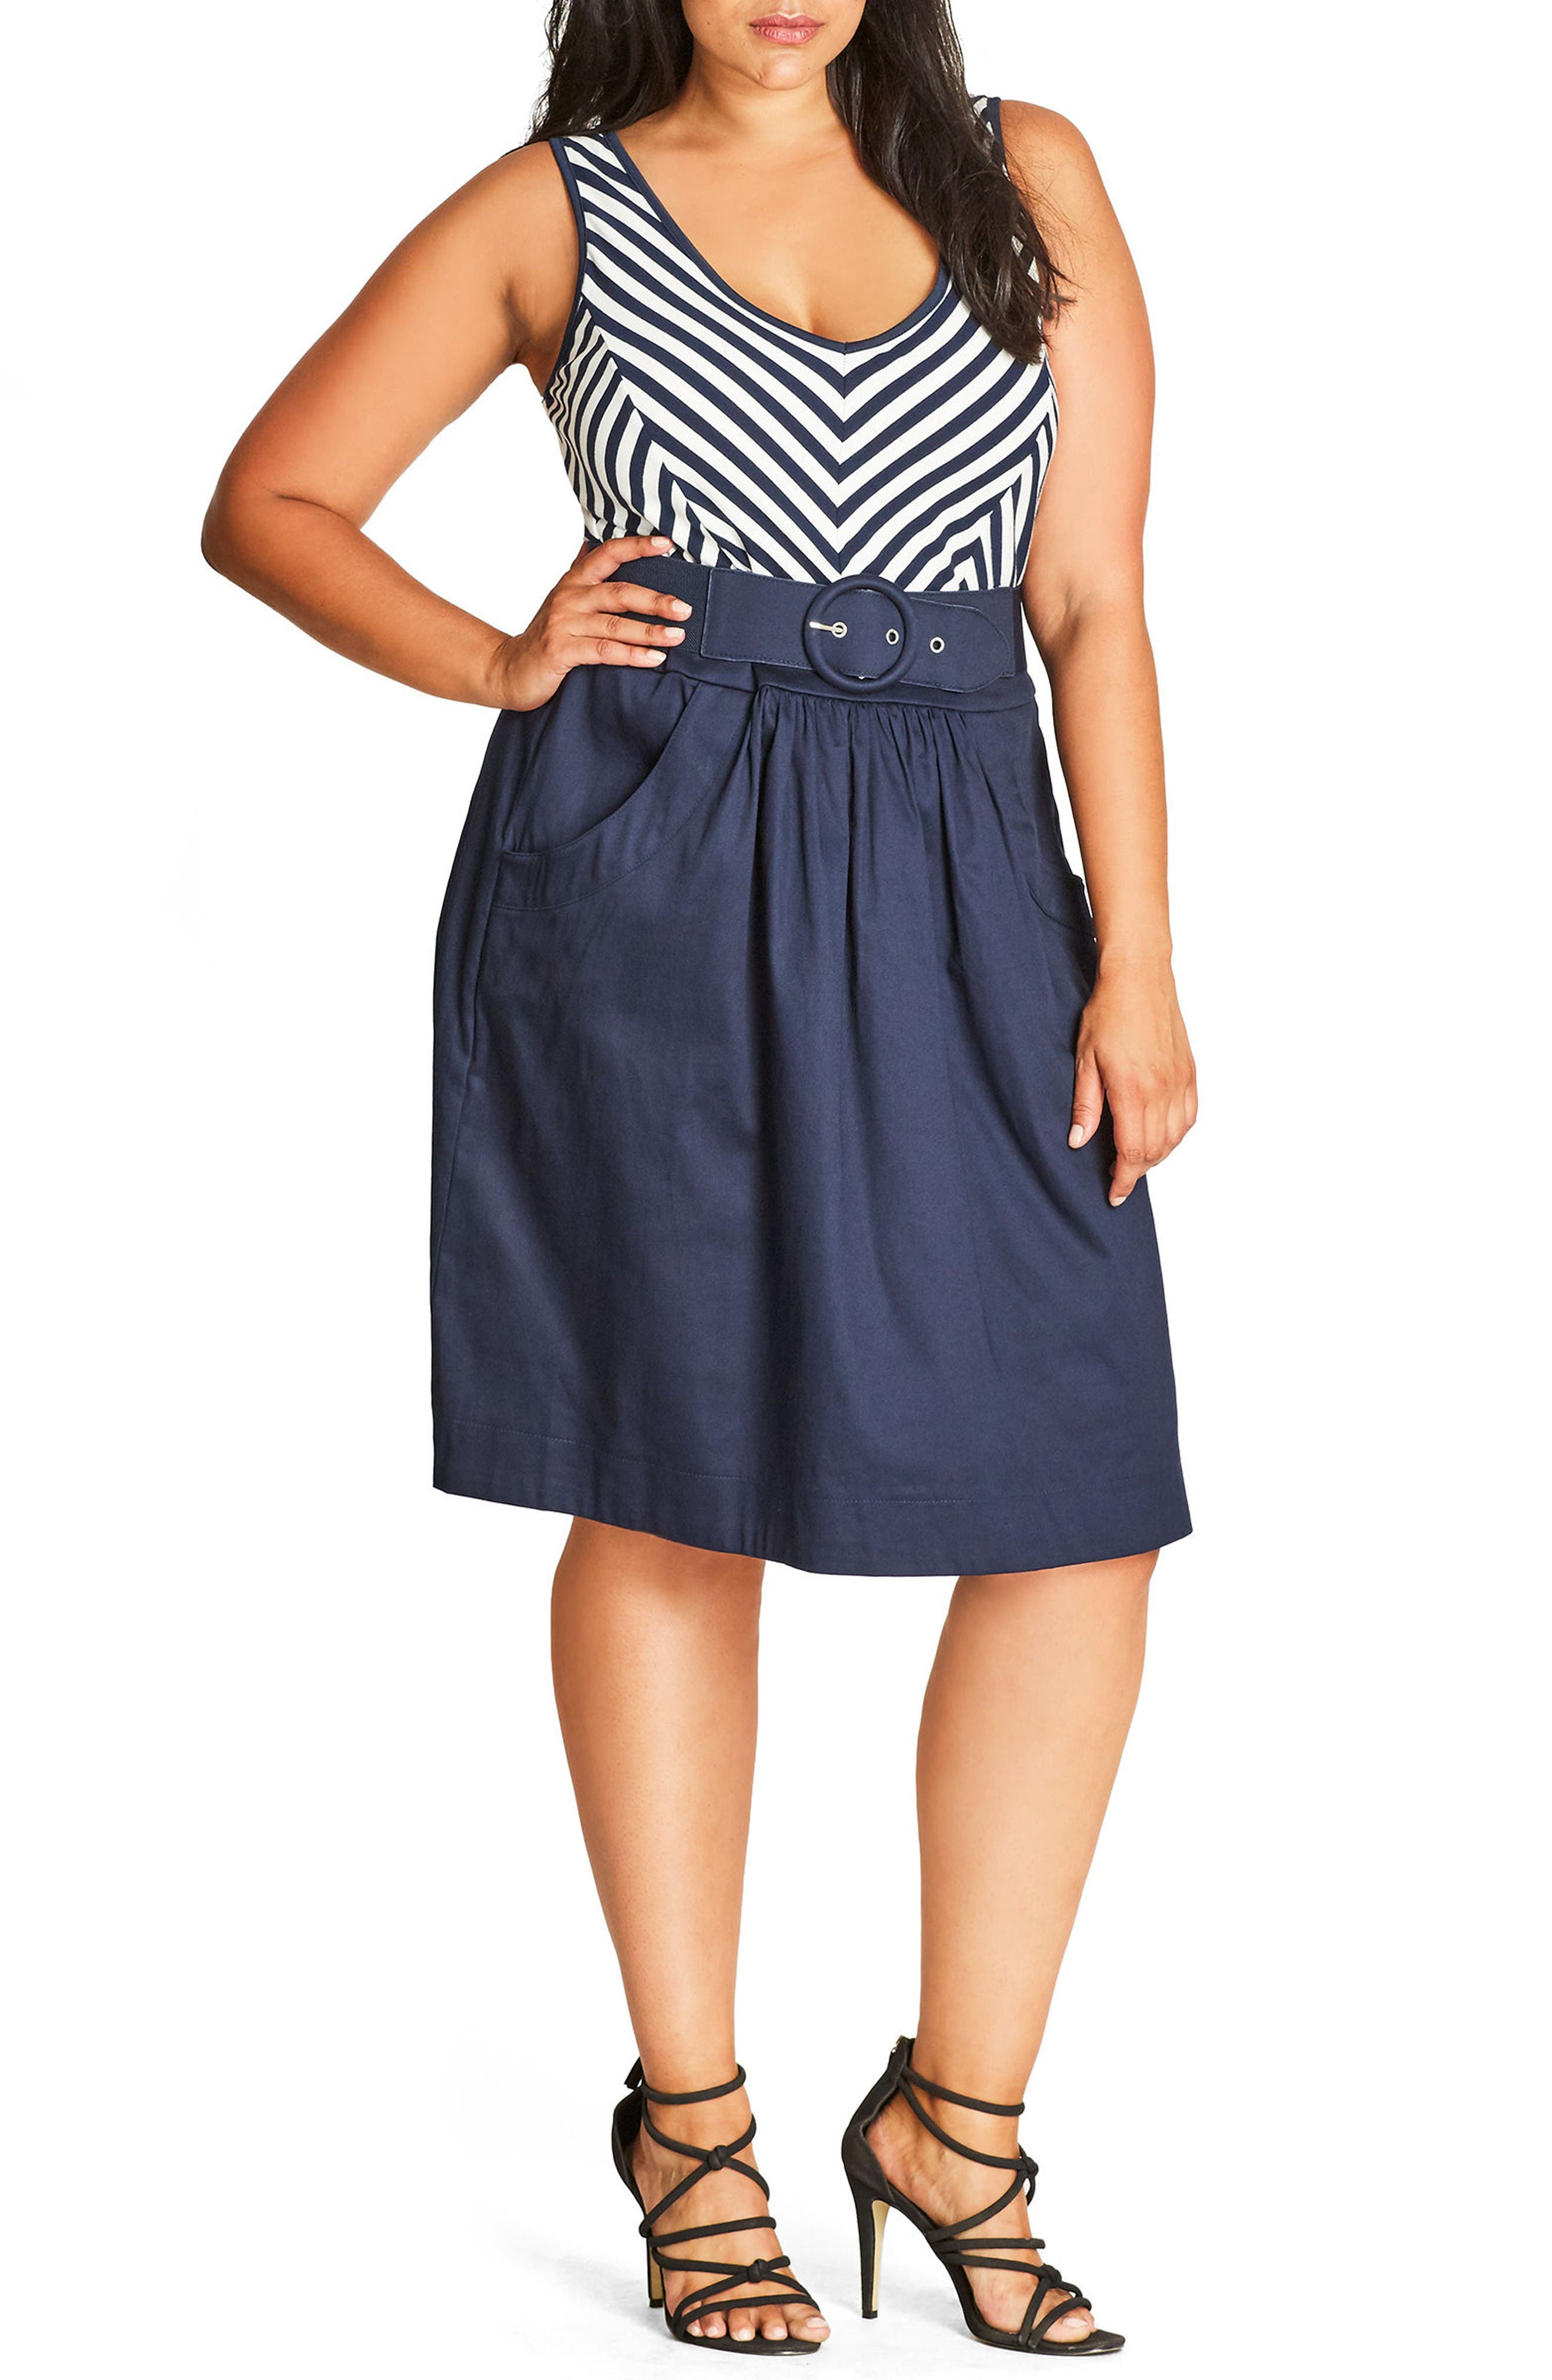 Main Image - City Chic Ahoy Sailor Belted Fit & Flare Dress (Plus Size)